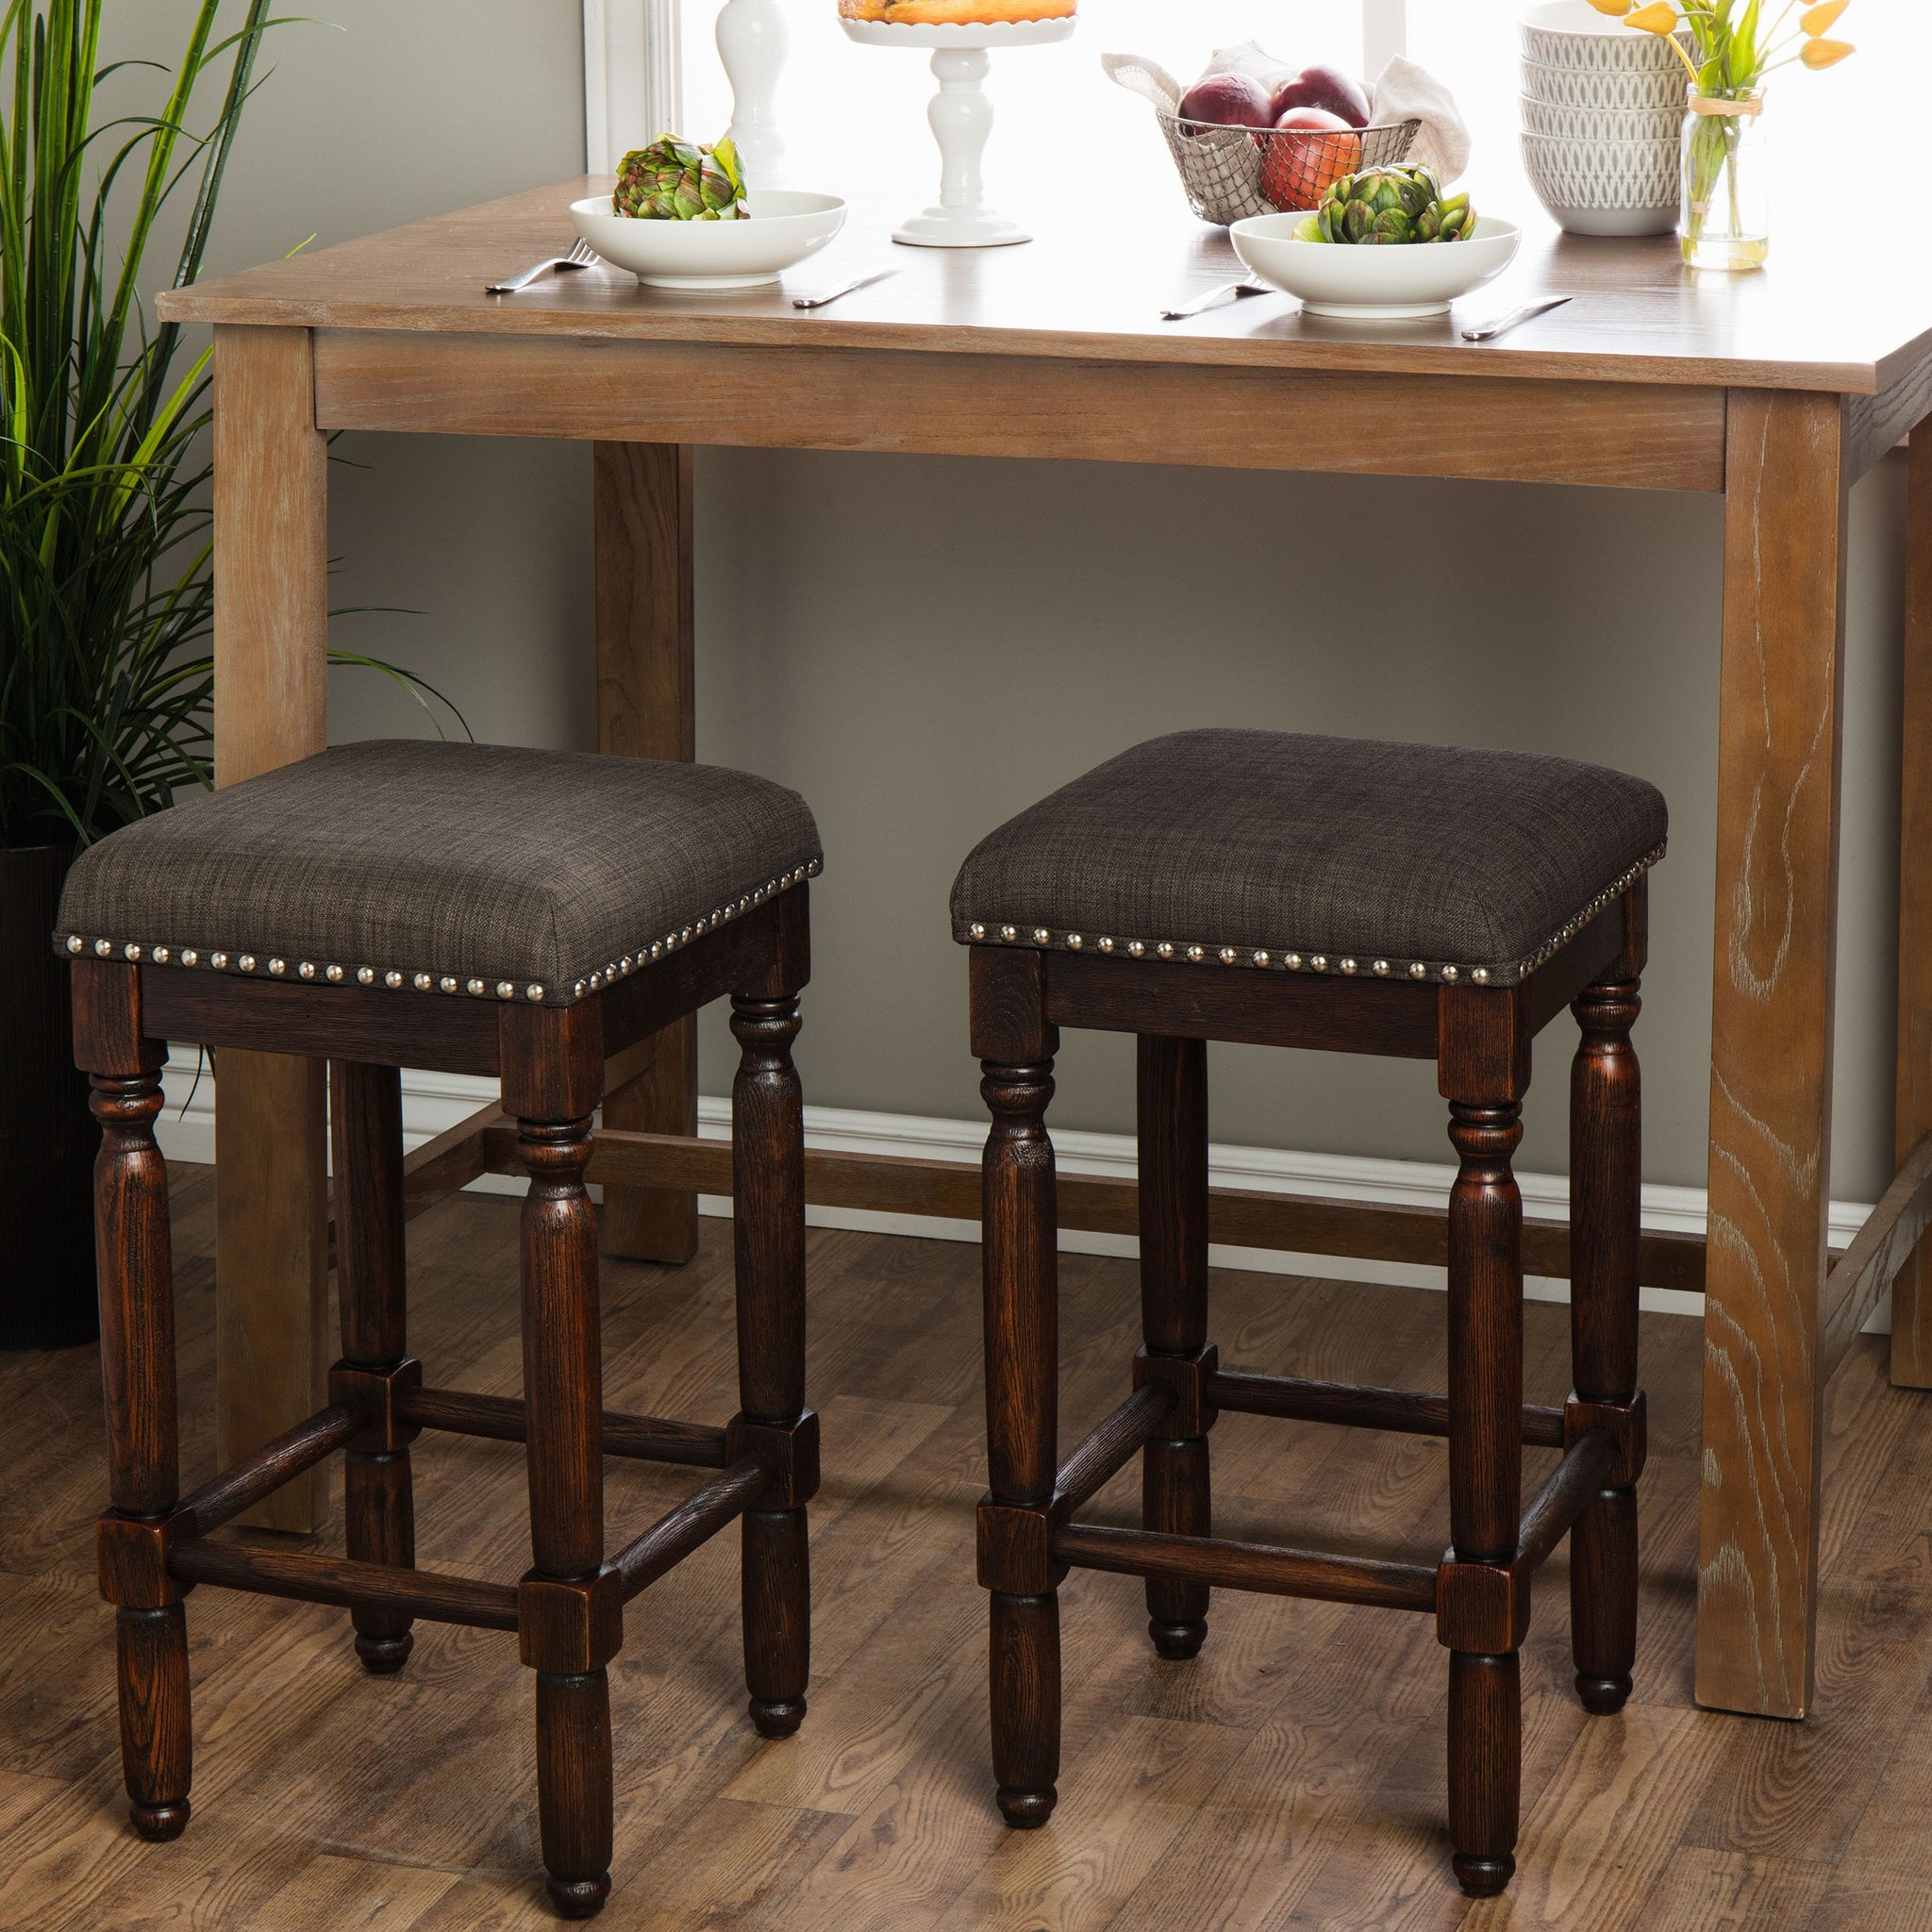 Coffee Counter Stools (Set of 2)